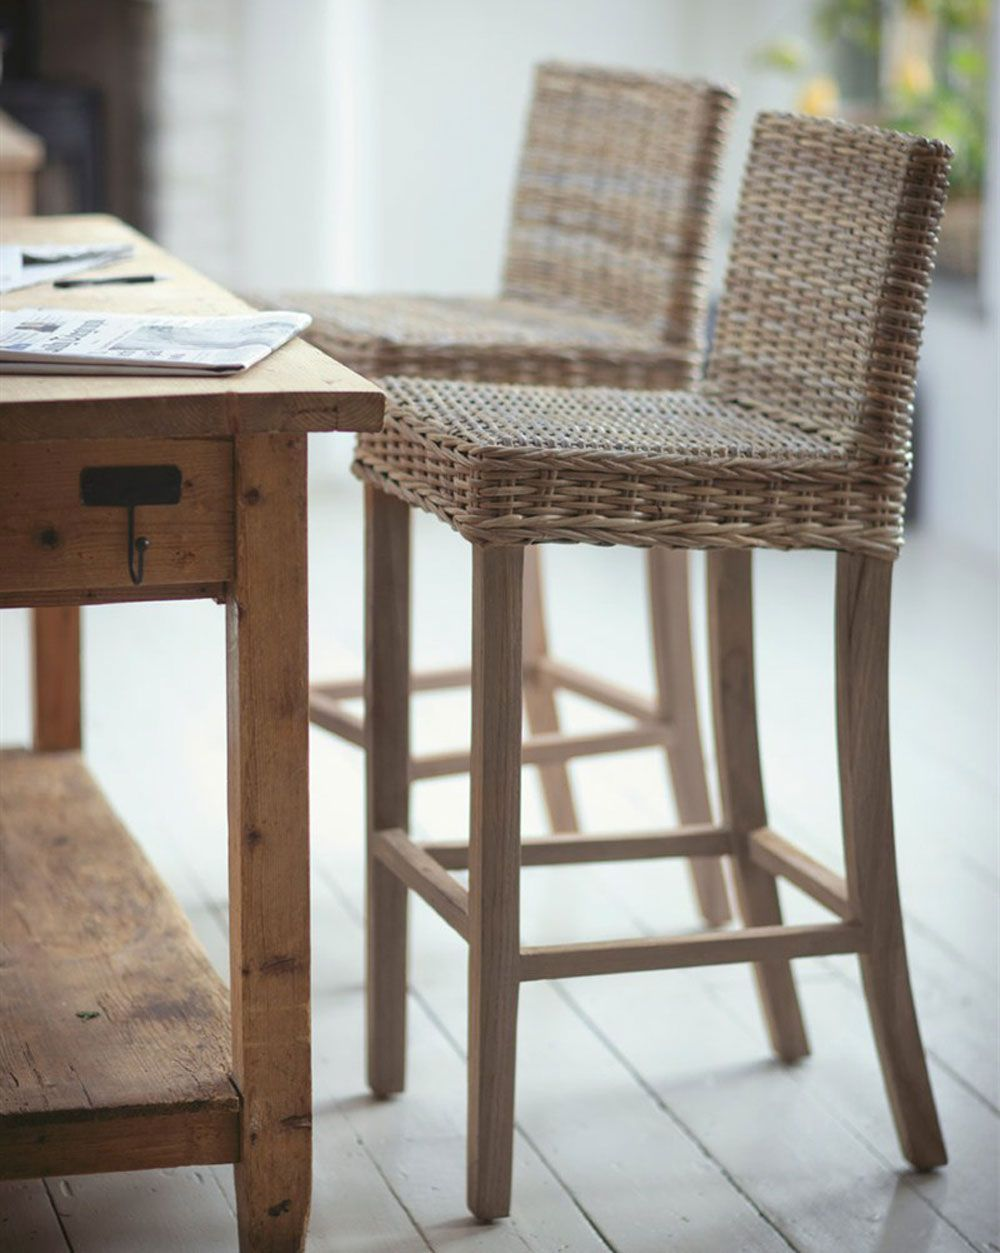 Best Bar Stools For Kitchen Islands And Breakfast Bars House To Home Rattan Hocker Kücheninsel Hocker Barhocker Küche